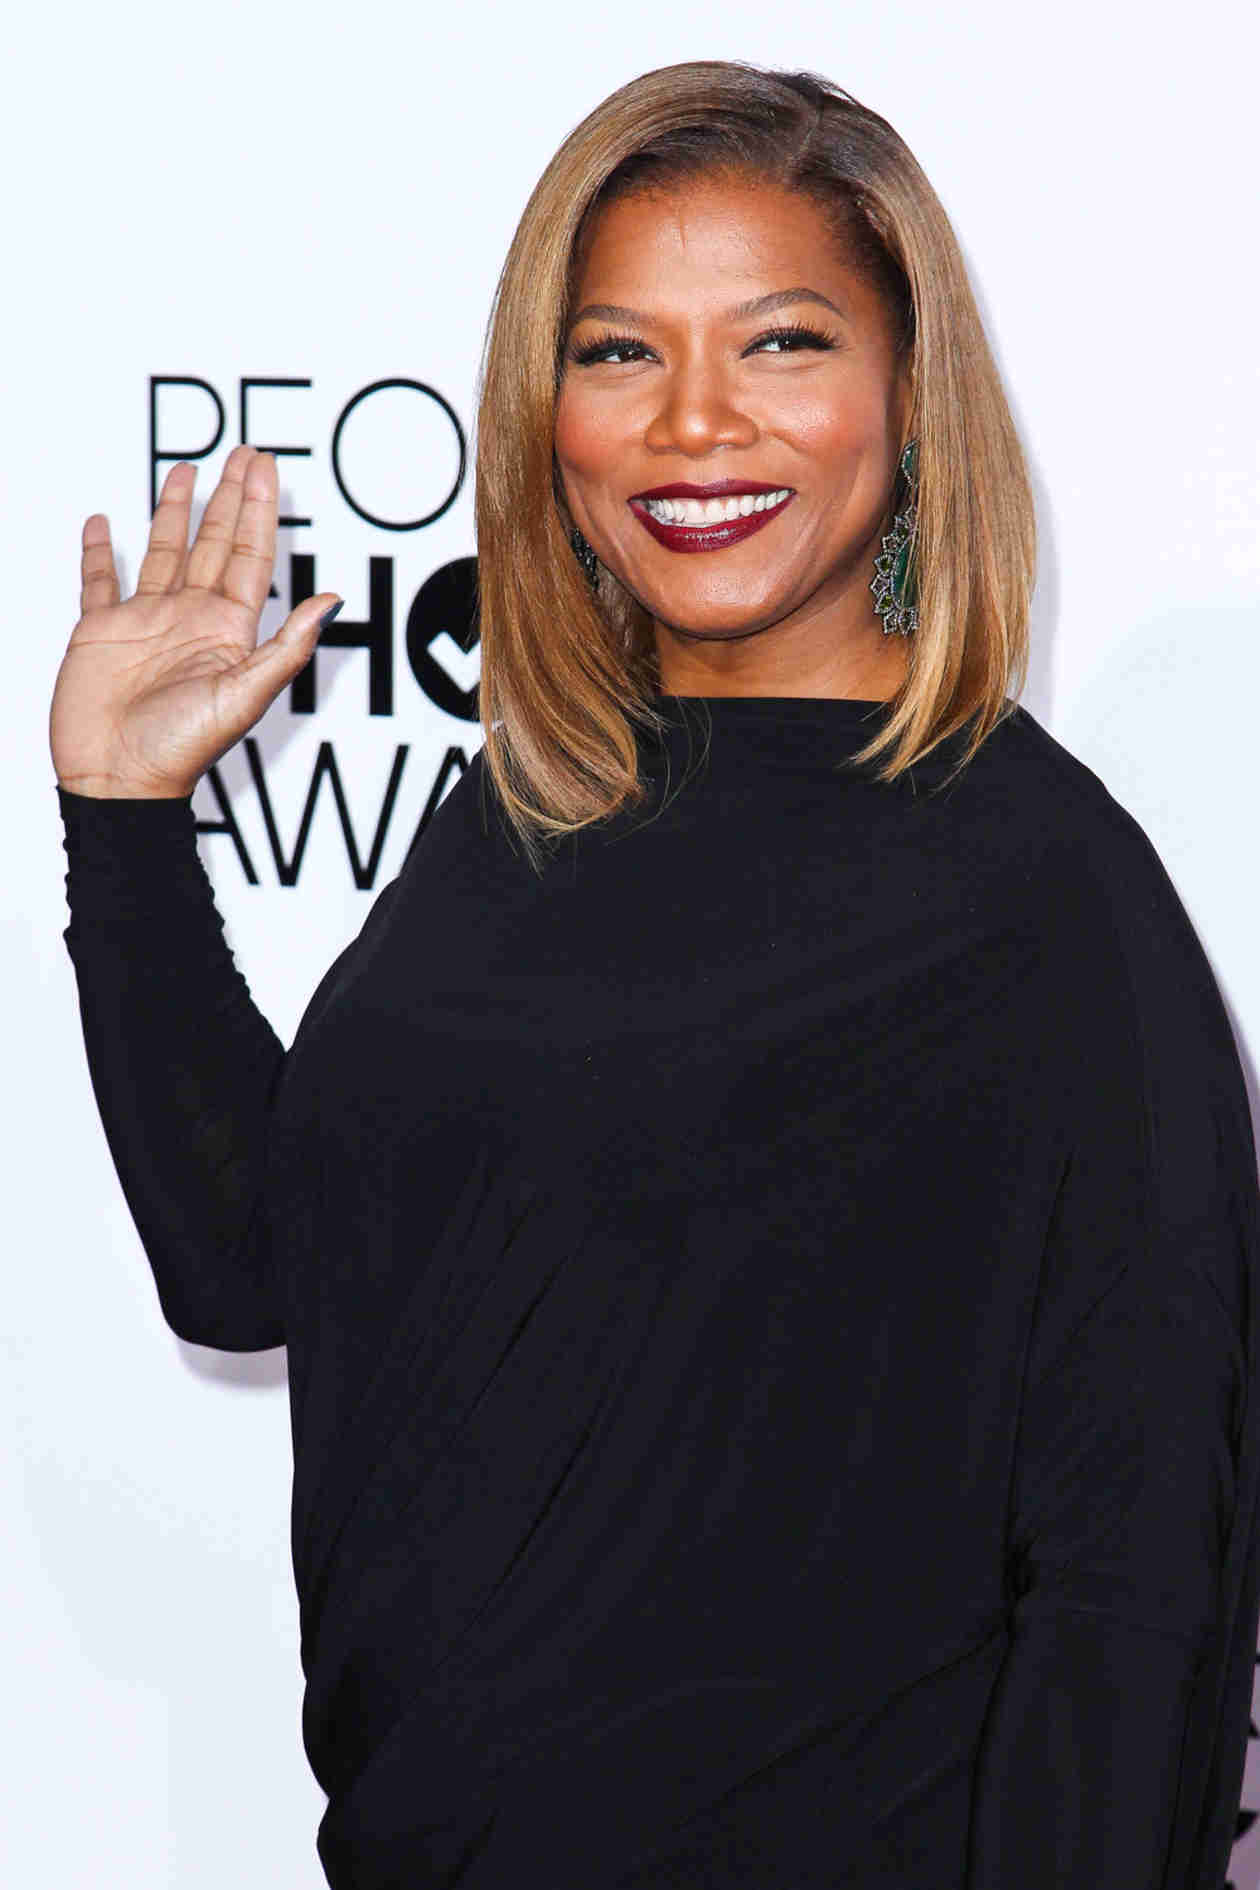 Queen Latifah Debuts Sleek New Haircut at 2014 People's Choice Awards (PHOTO)